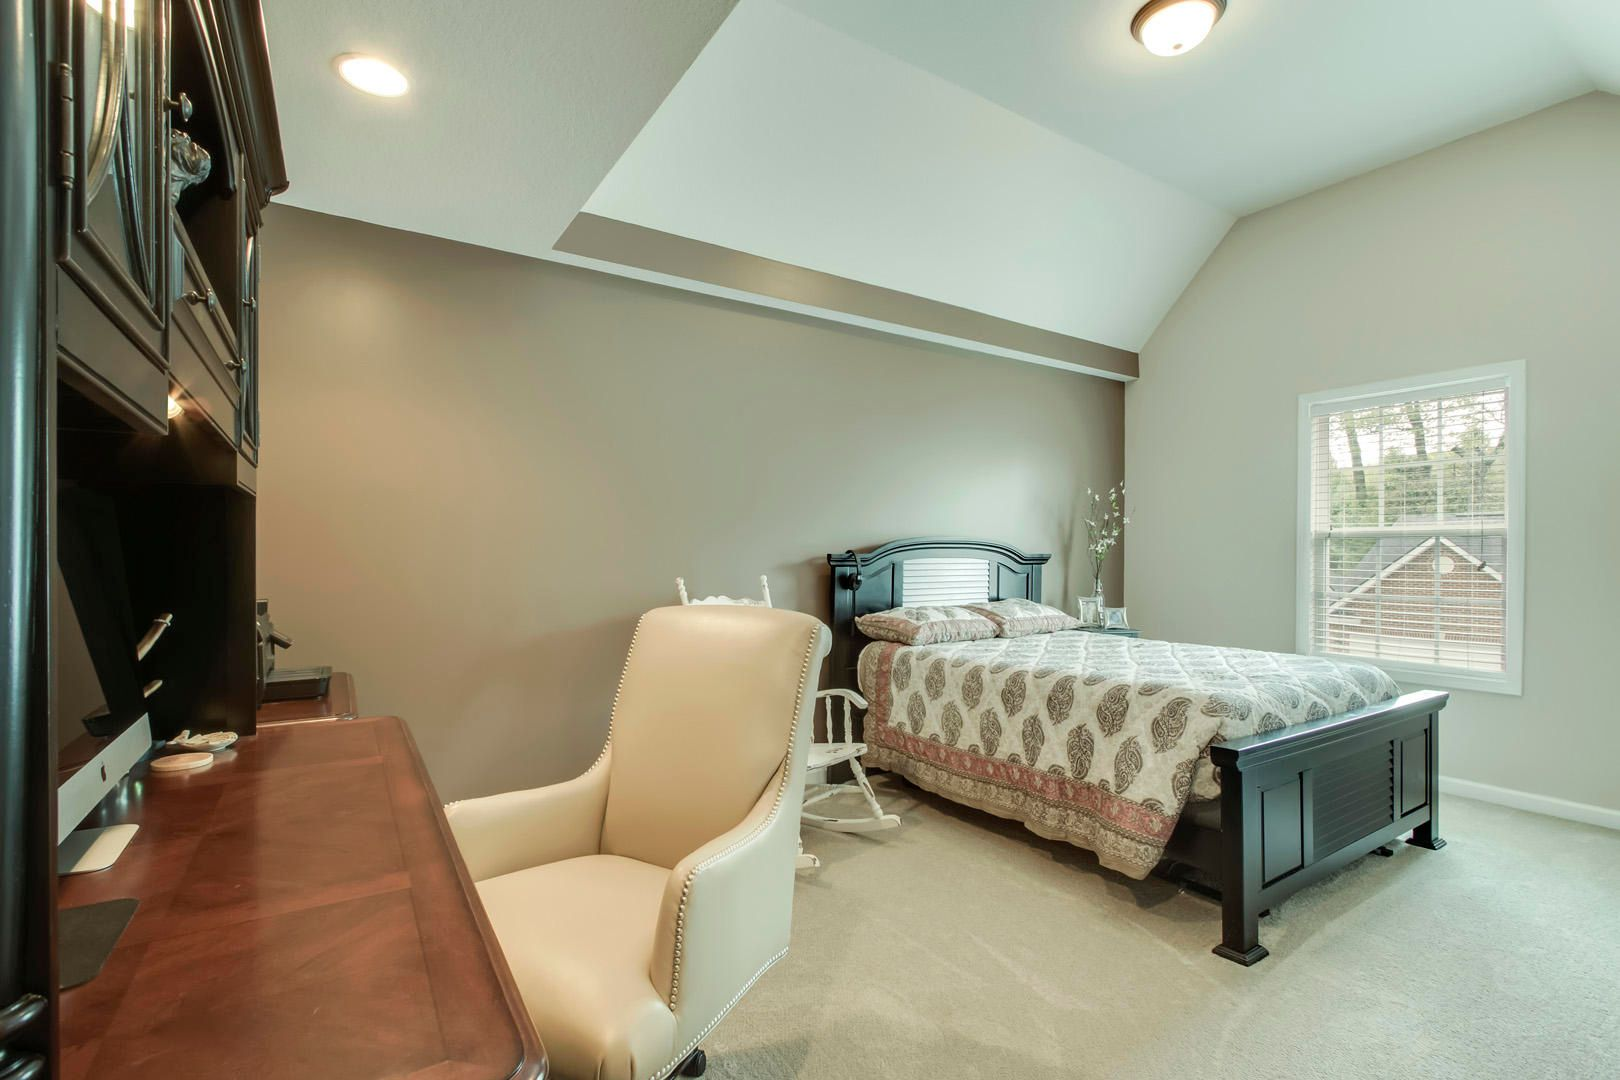 Bedroom 3 w/ vaulted ceiling